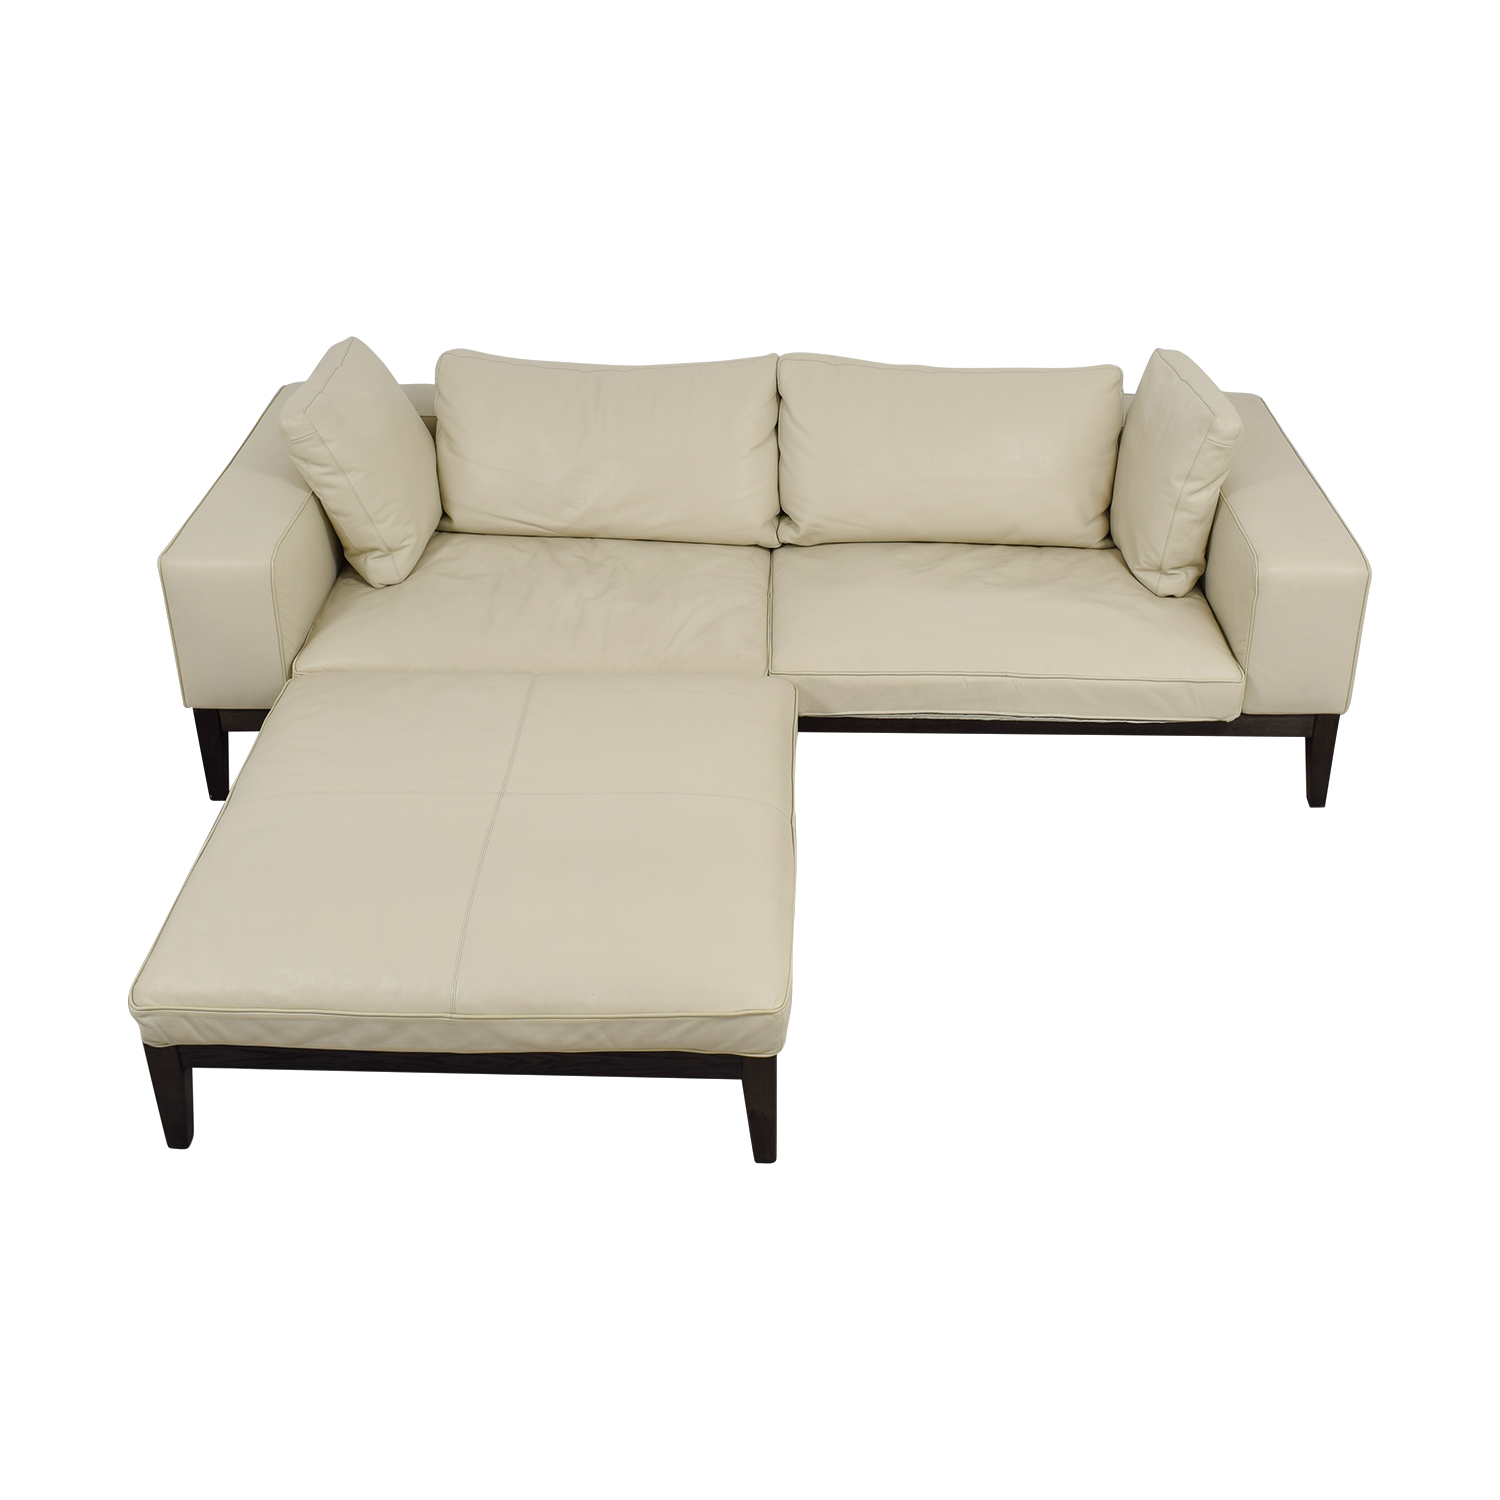 large chaise sofa leather corner uk online 90 off tree contemporary italian white